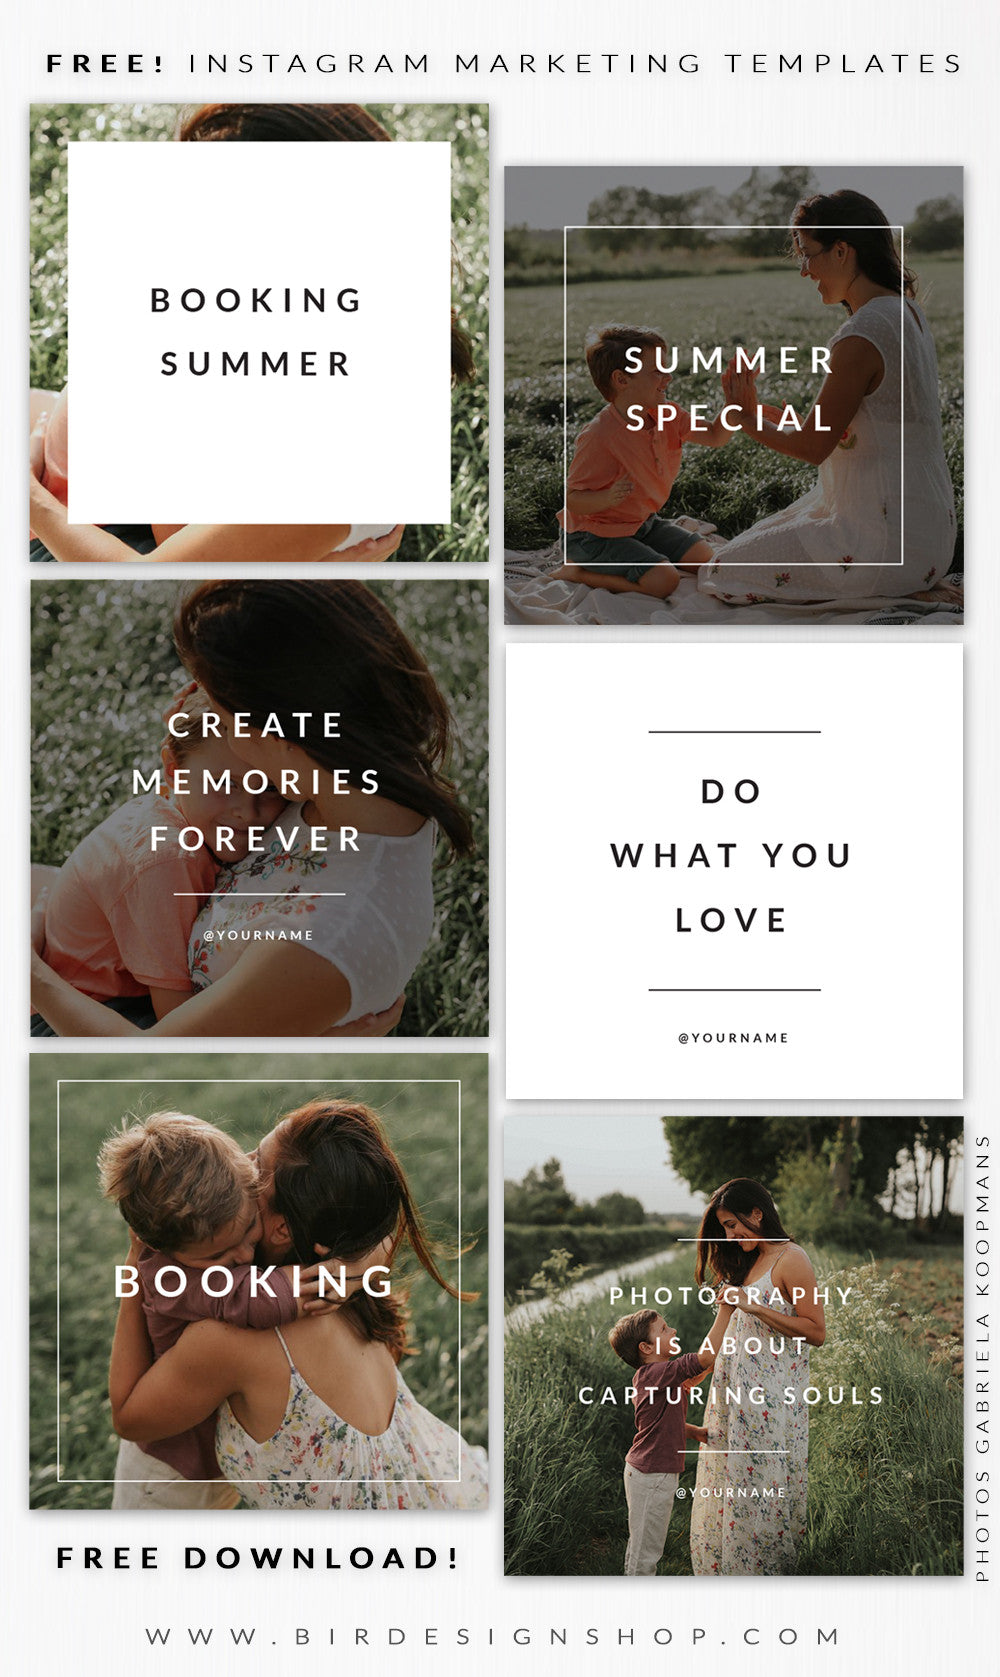 Free download - instagram and social media templates